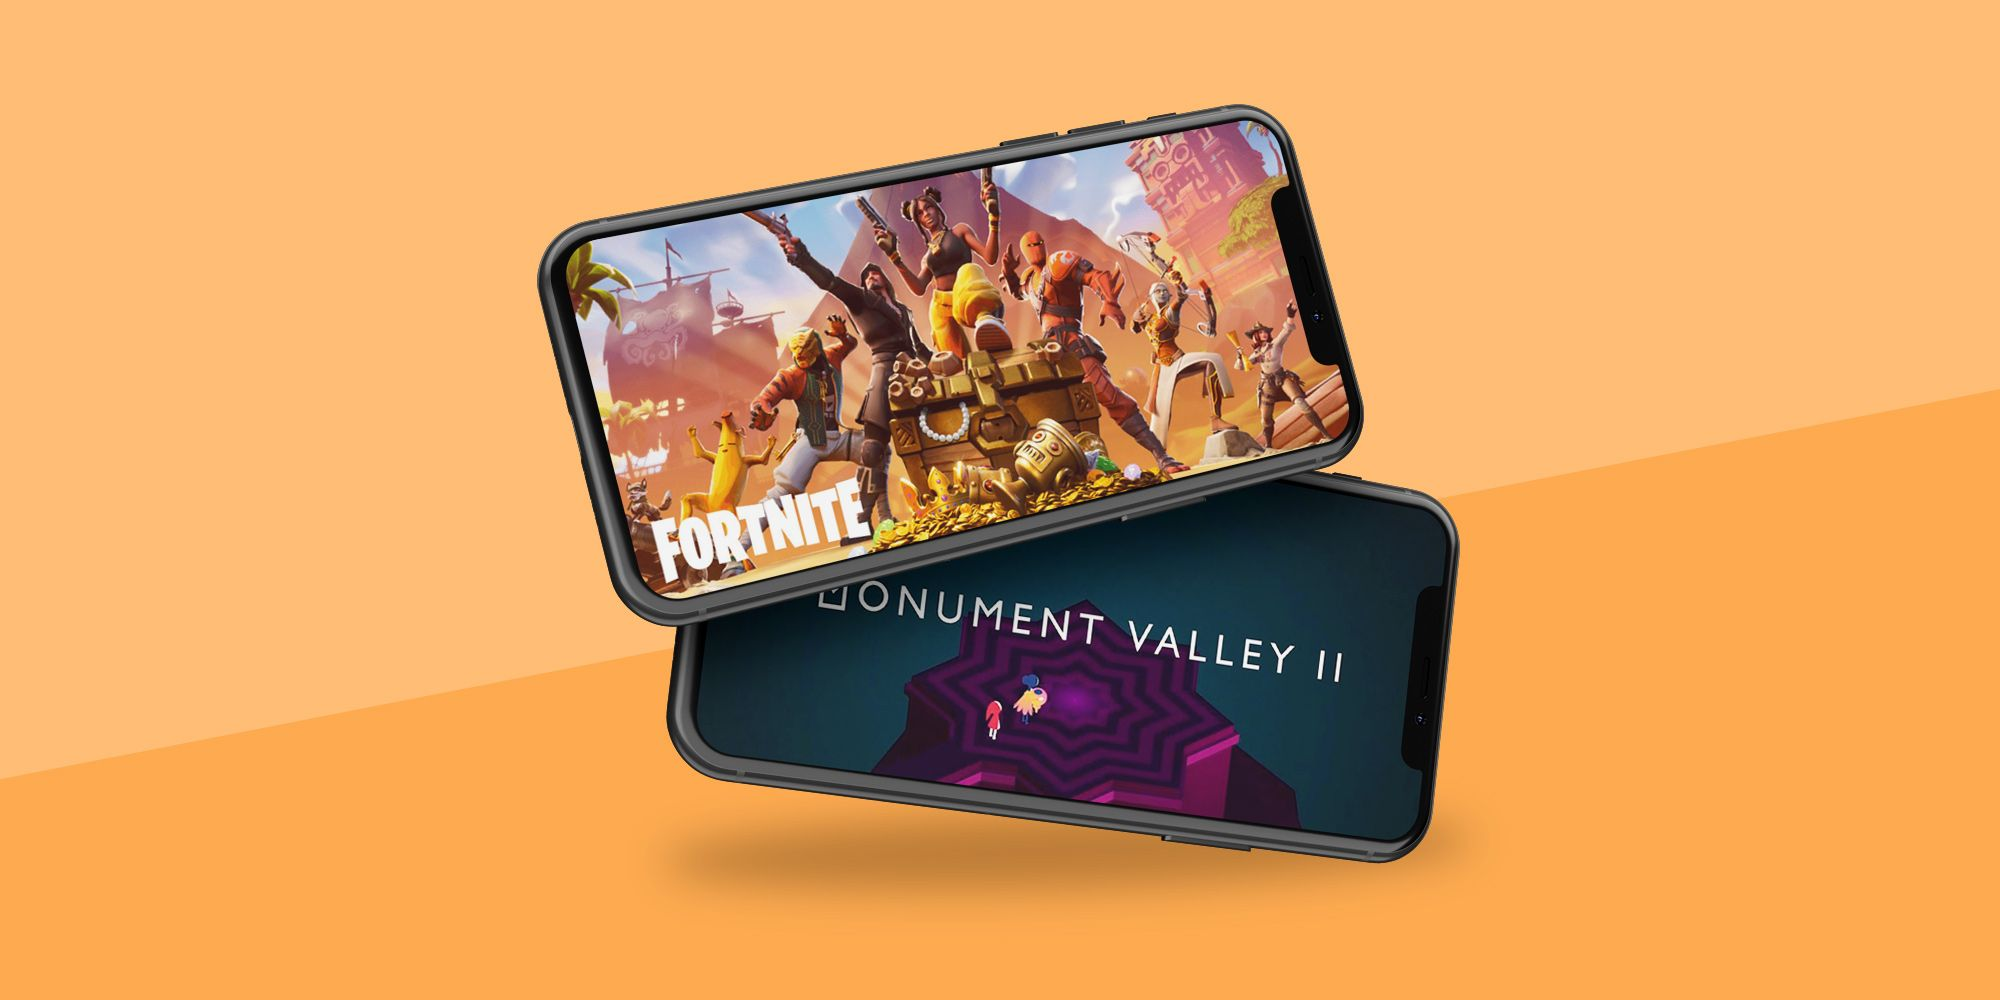 15 Best Mobile Games 2020 Top Phone Video Games To Play Right Now